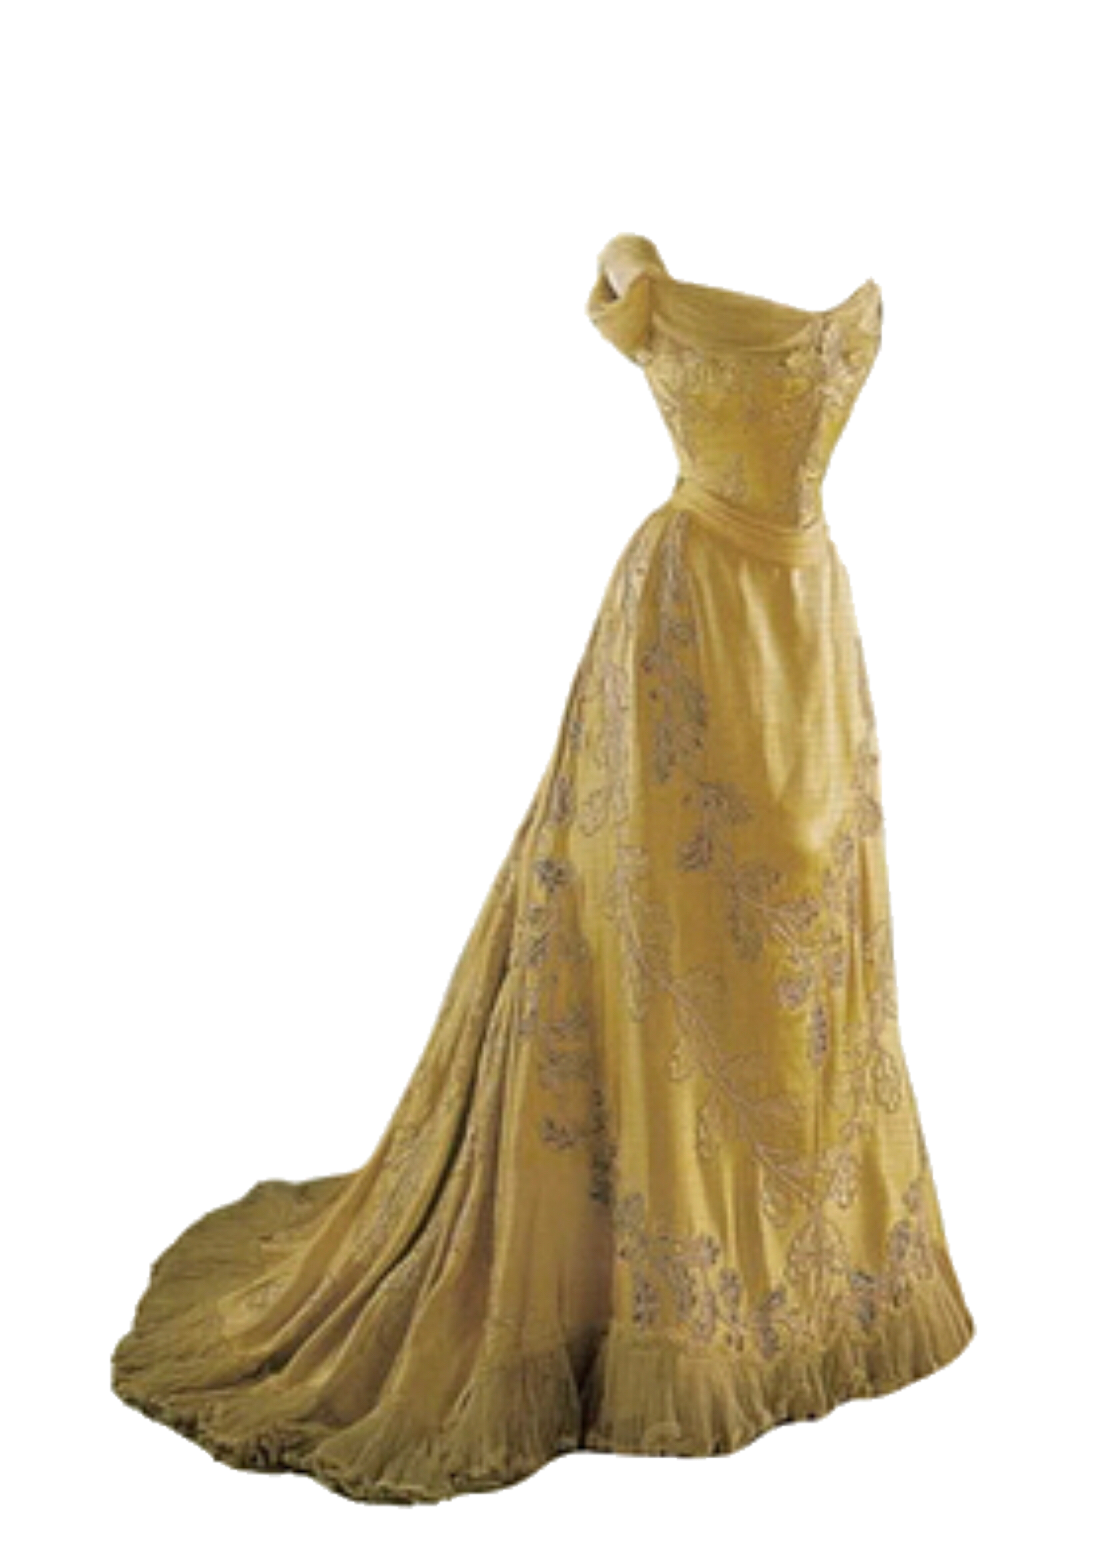 Yellow Dress Polyvore Moodboard Filler Gown Princess Outfits Pretty Outfits Yellow Fashion